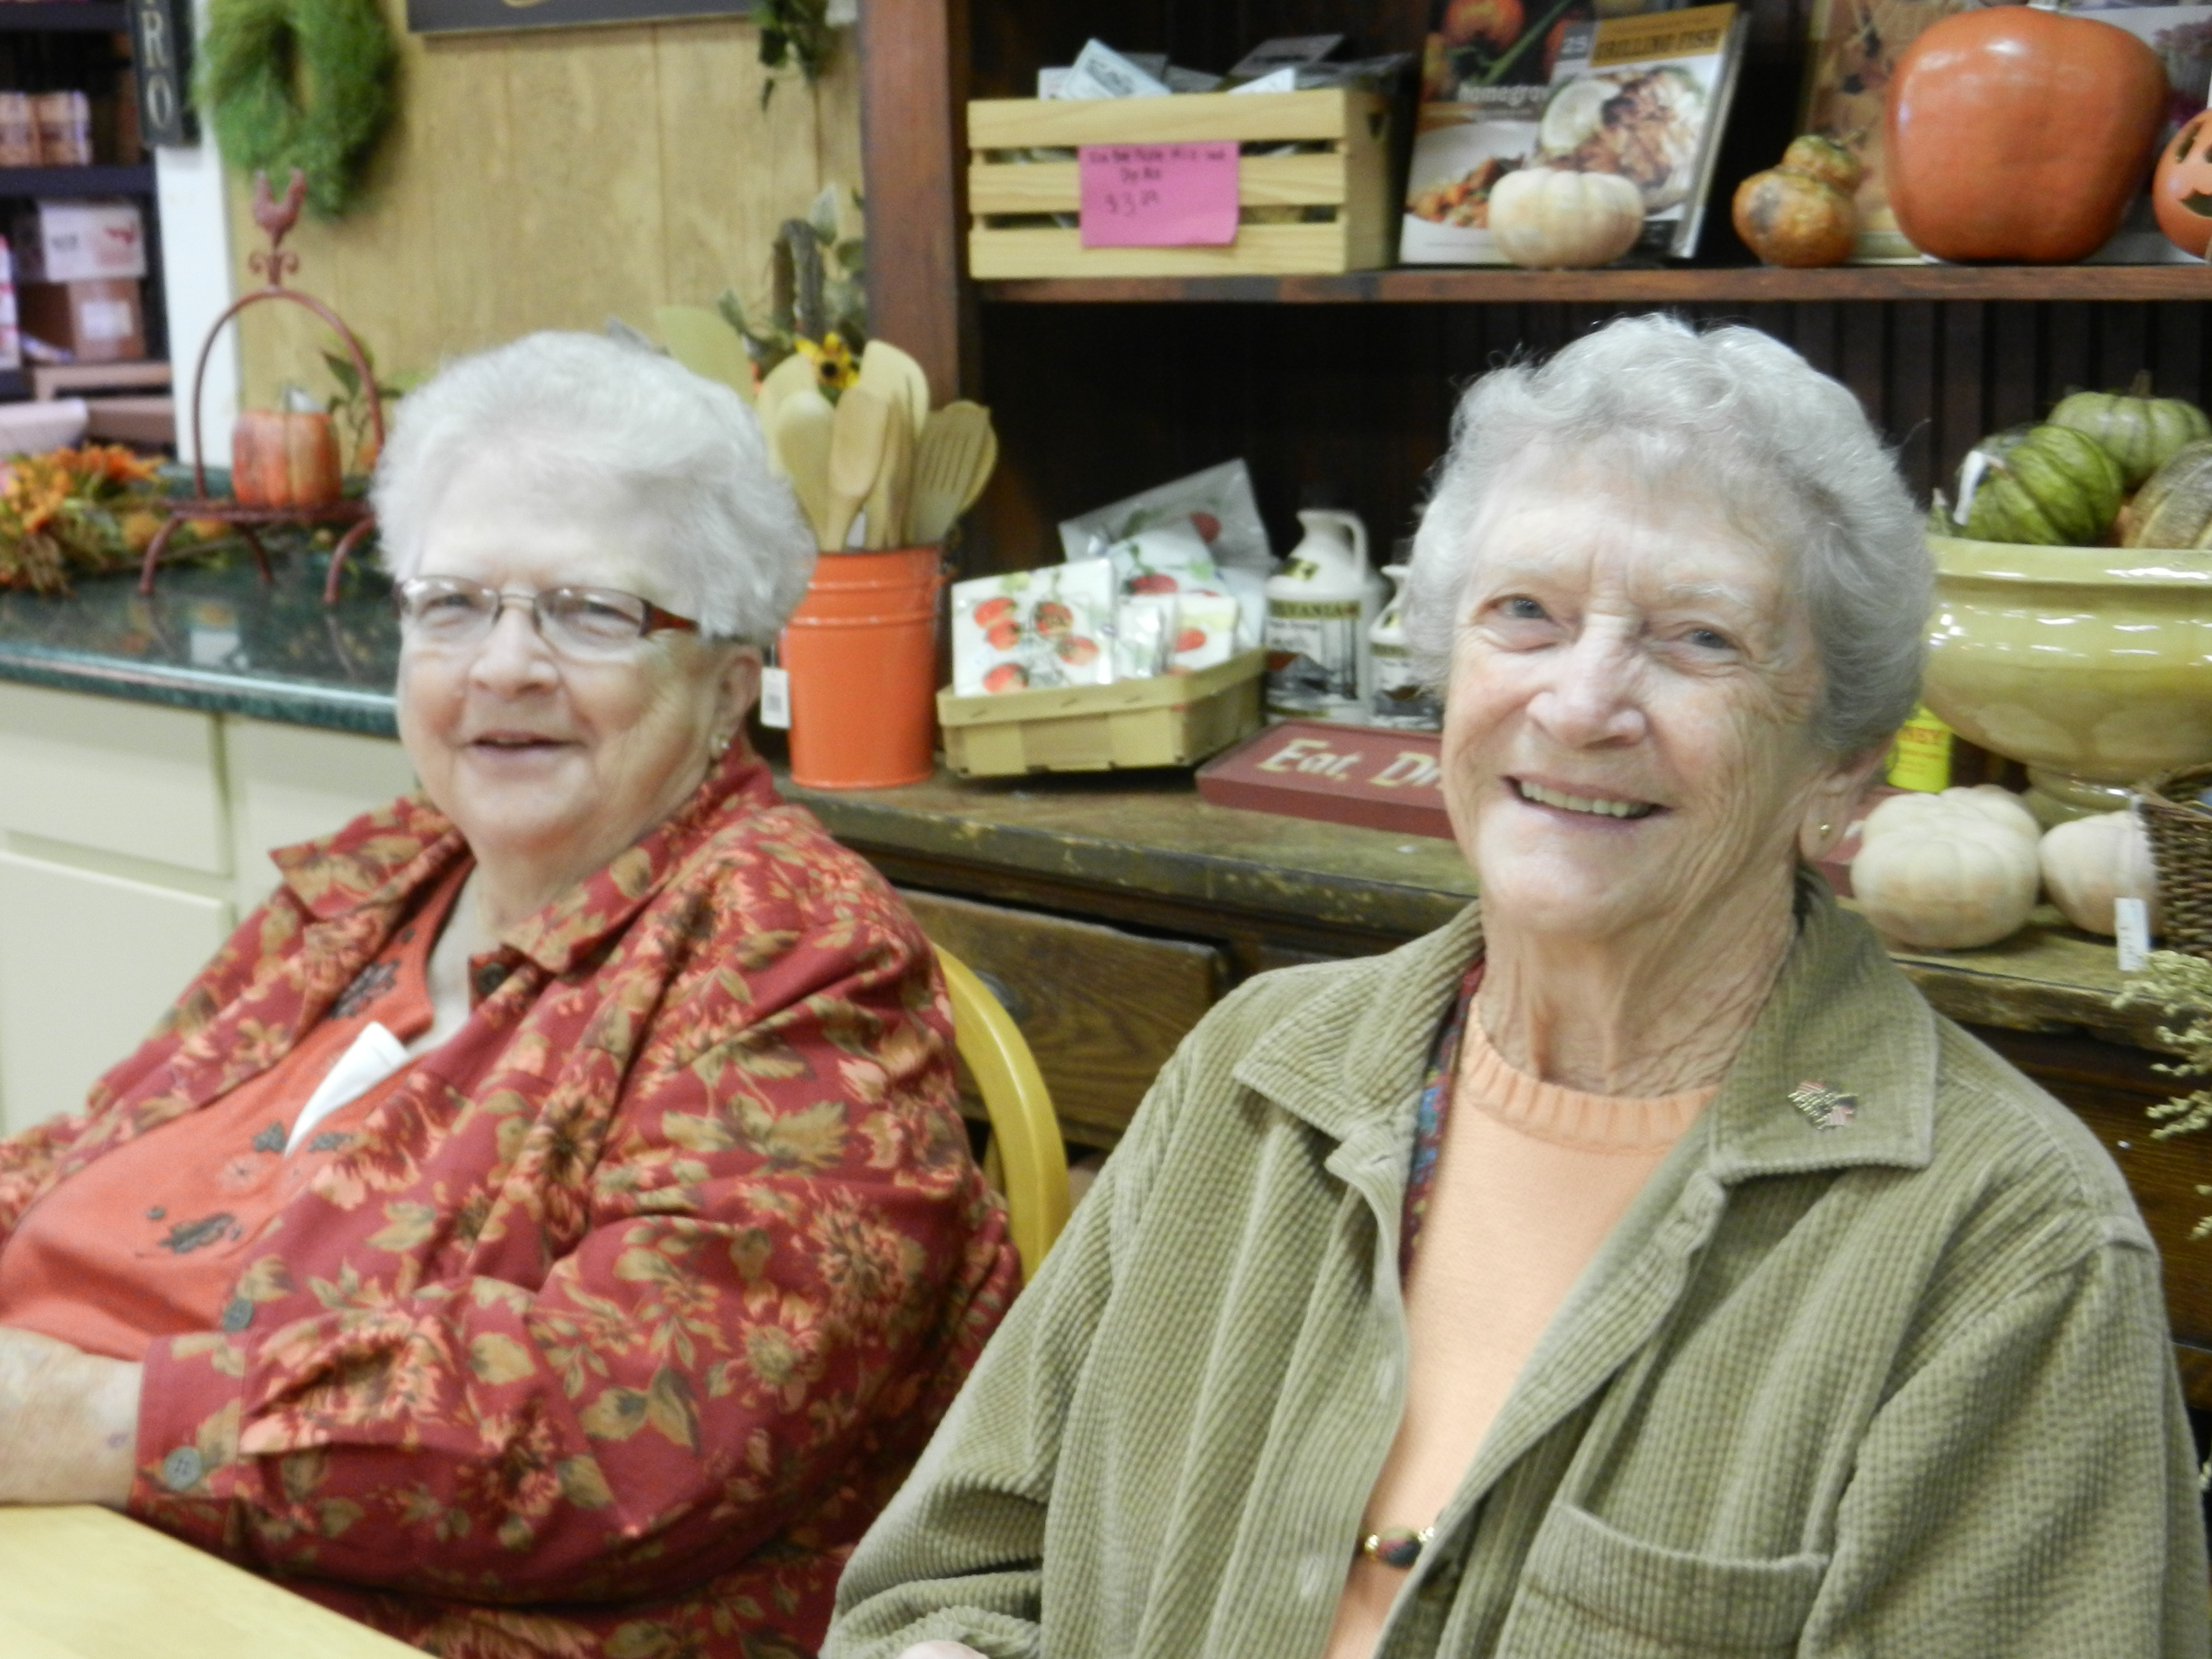 Mom and her sister, Aunt Dorie at the market - summer 2012.